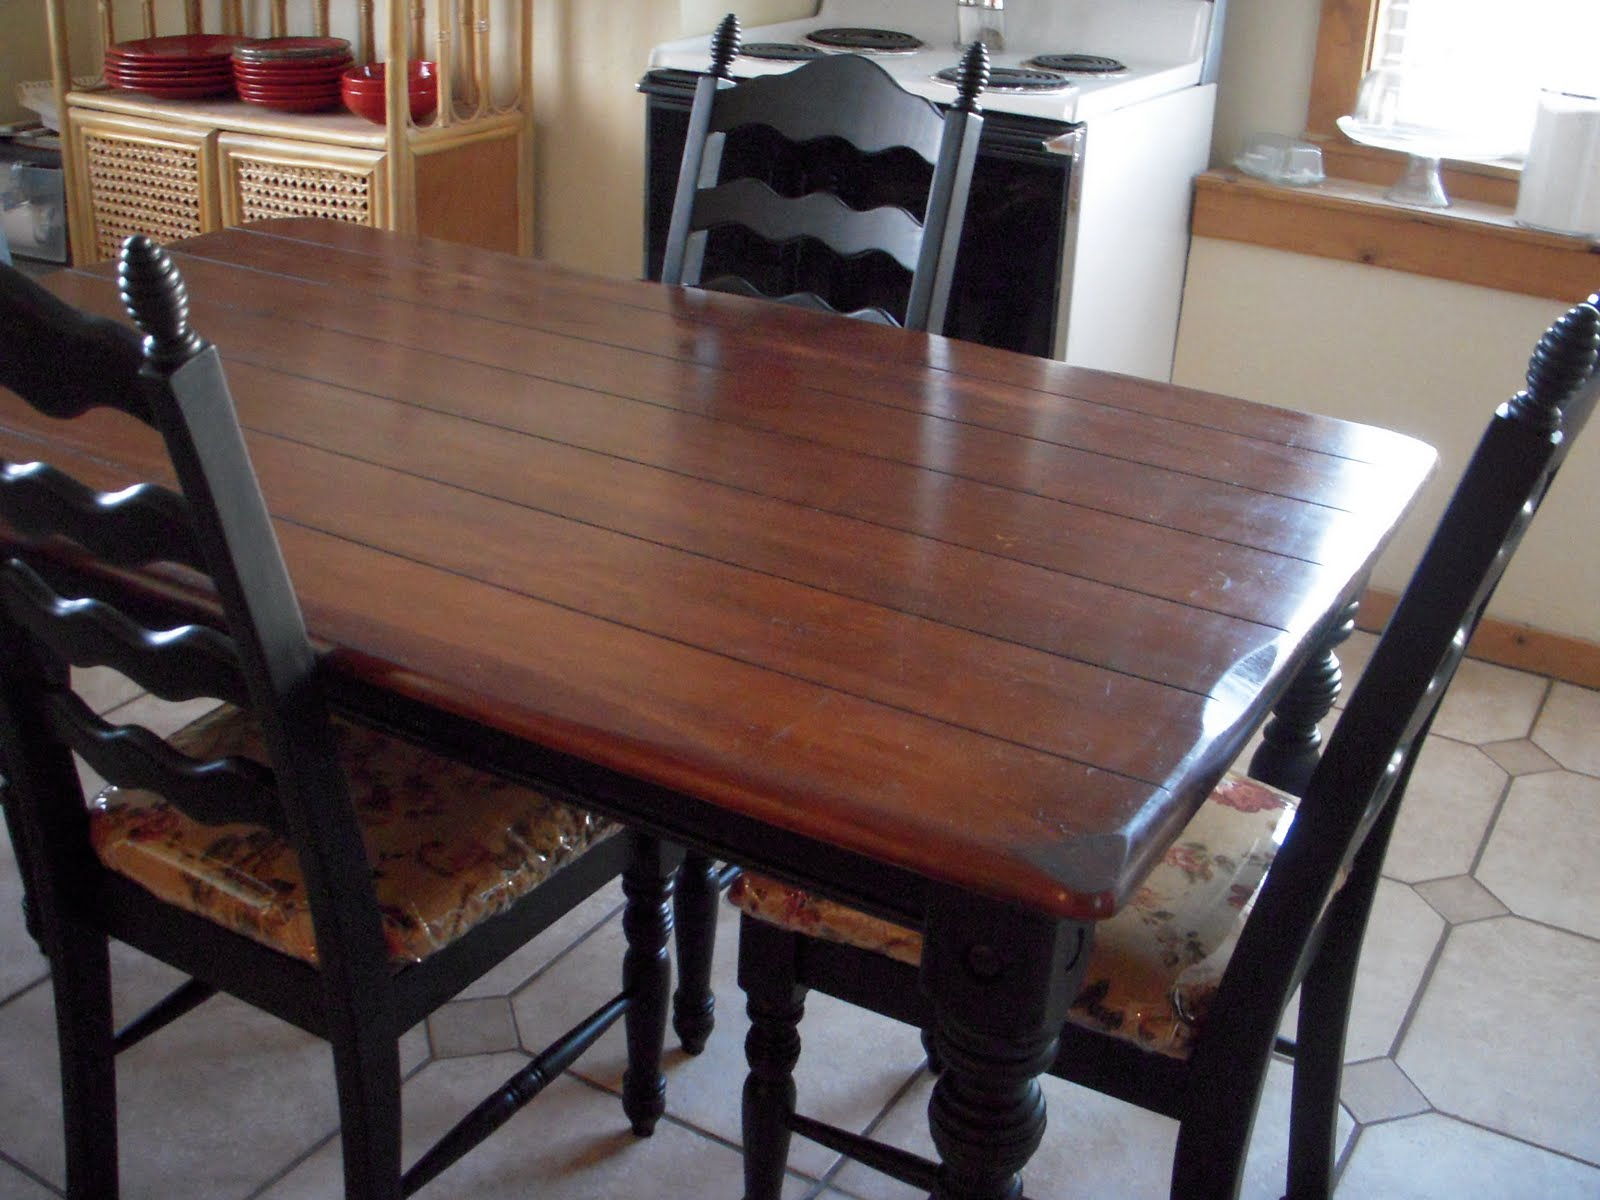 Diy kitchen table top hd image full wallpapers do it yourself divas diy kitchen table makeover solutioingenieria Choice Image